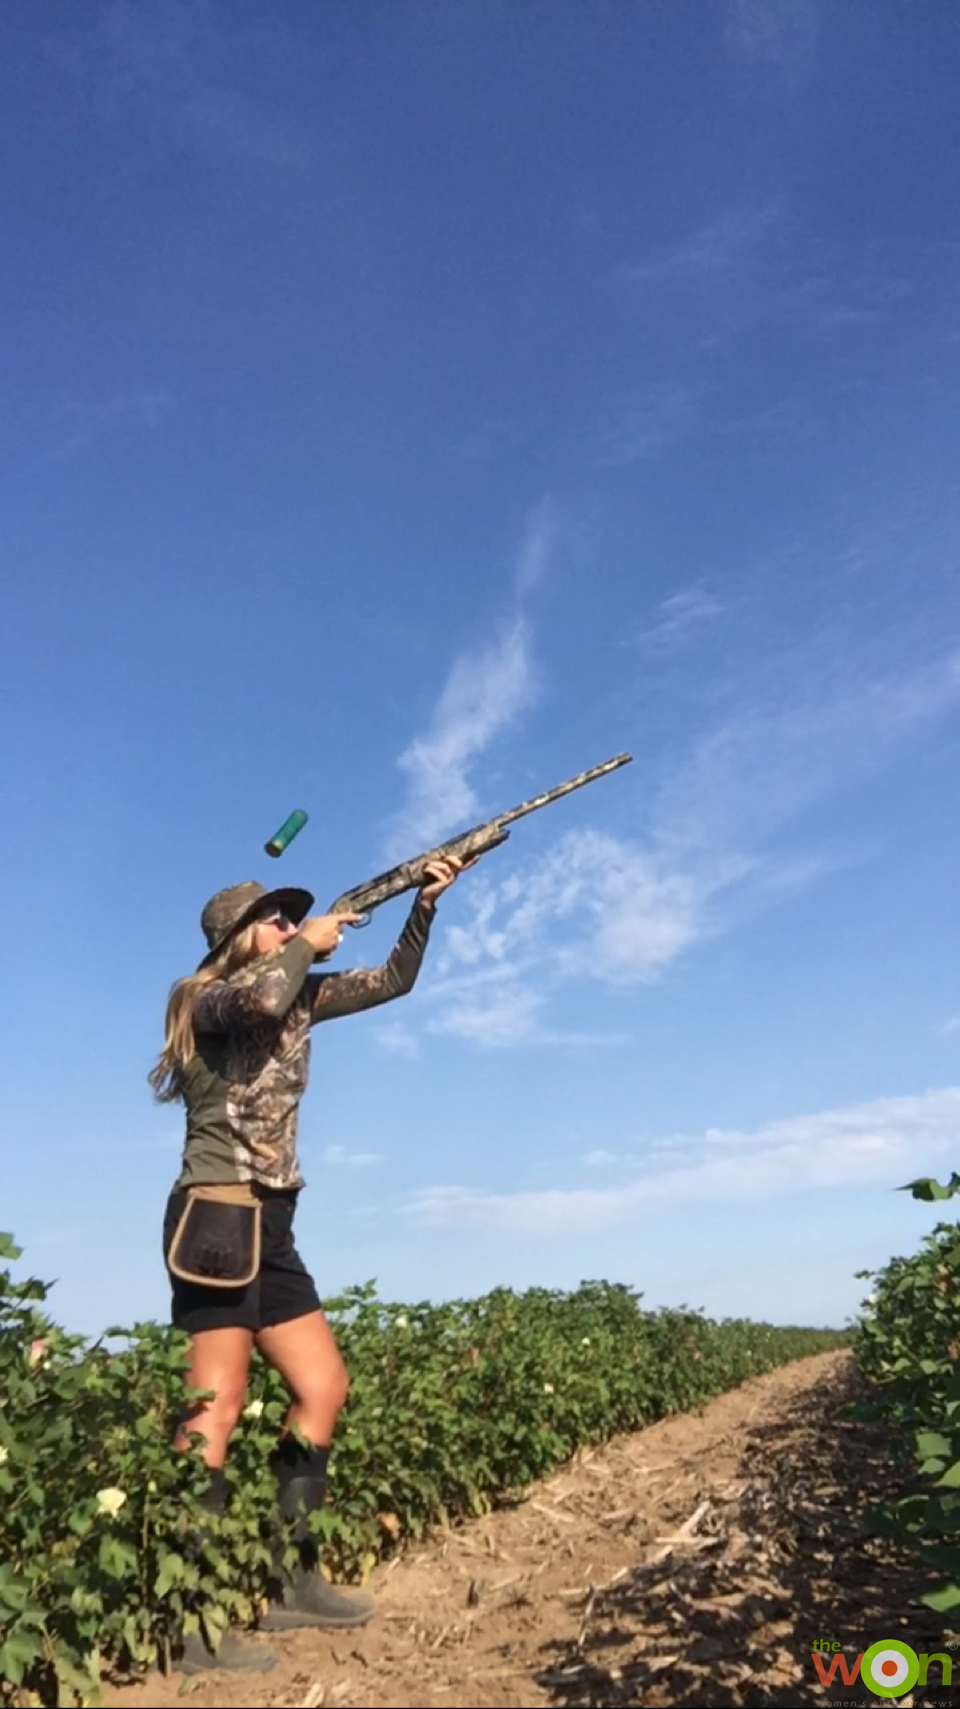 Dove-SHooting-Remington-Jessica doves